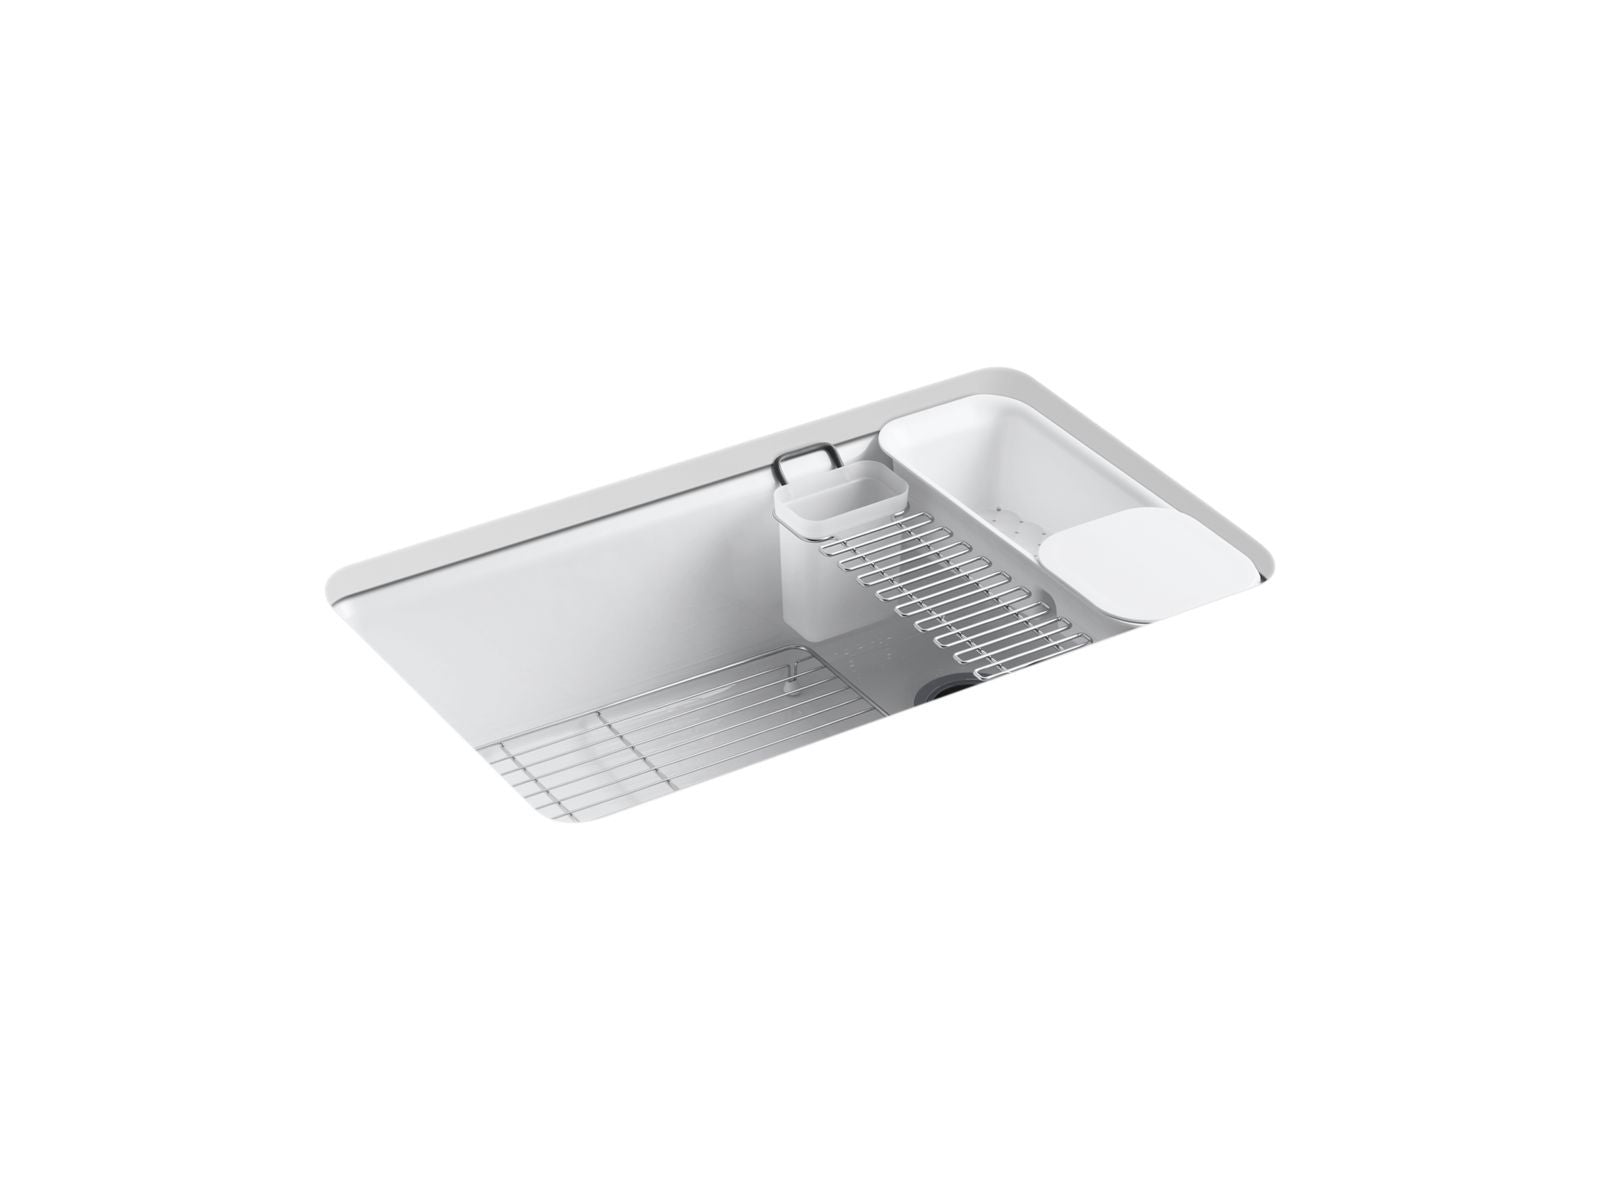 "Riverby 33"" x 22"" x 9-5/8"" Under-Mount Single-Bowl Kitchen Sink with Accessories"